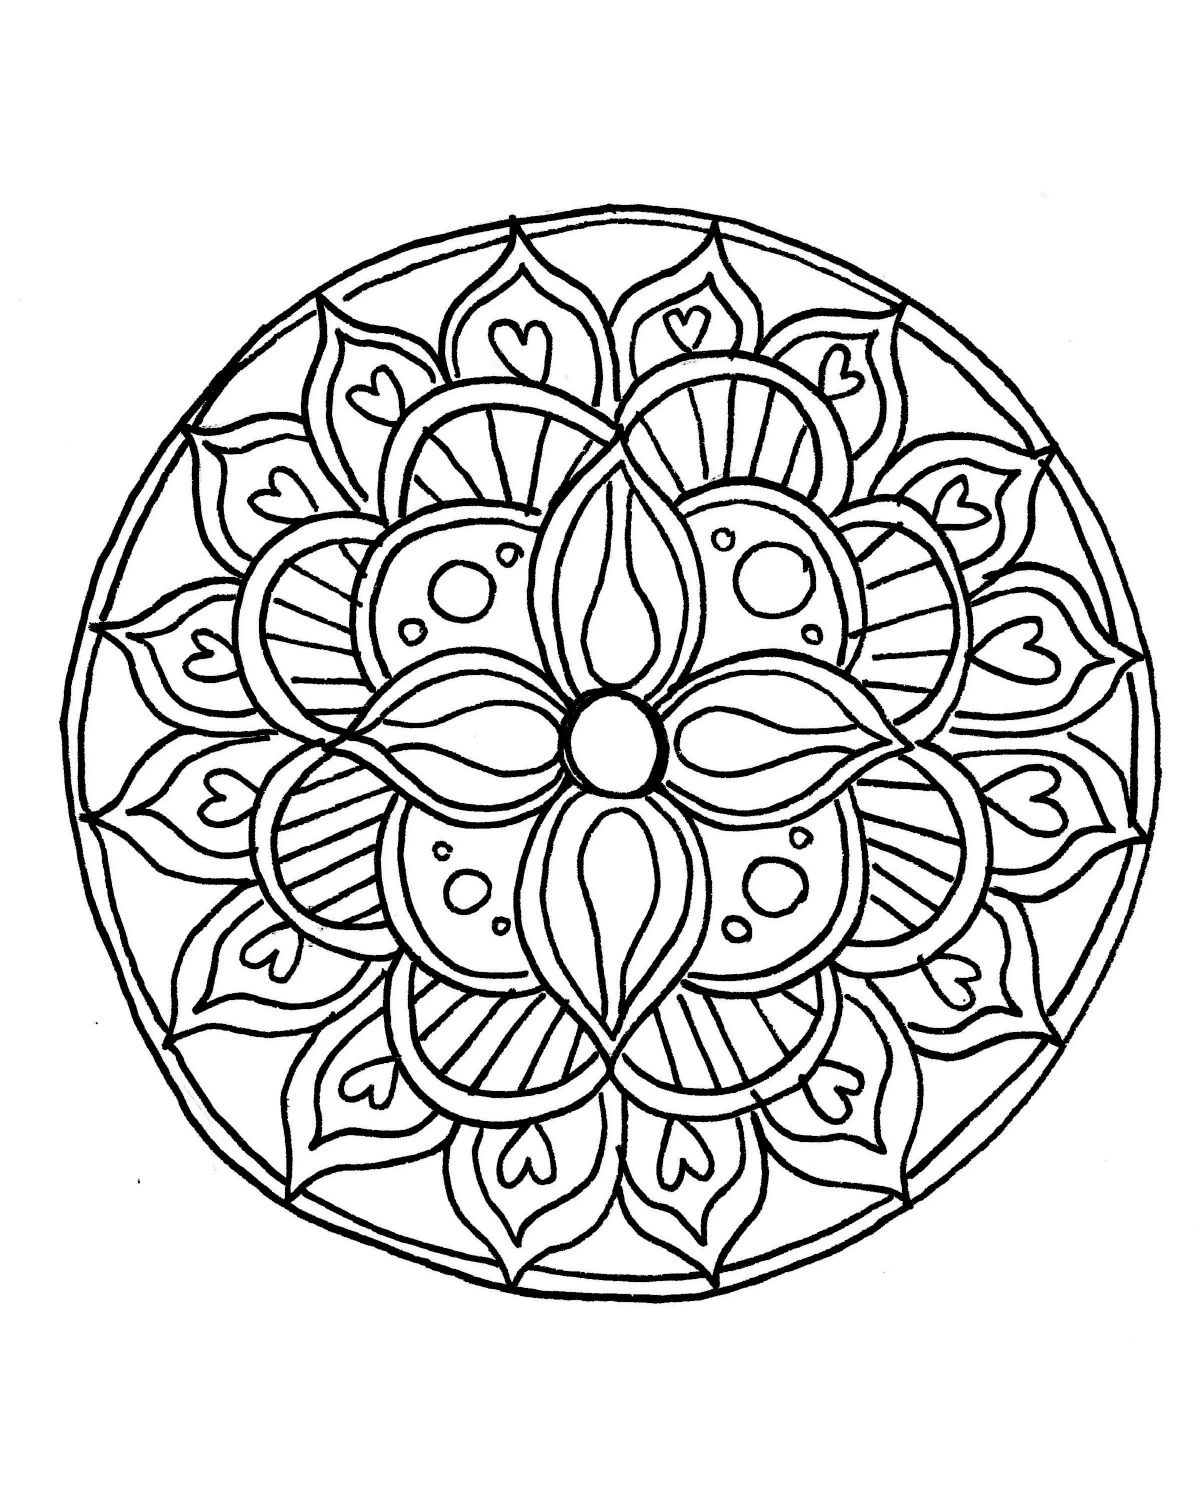 Coloring Pages For Adults Easy at GetDrawings | Free download